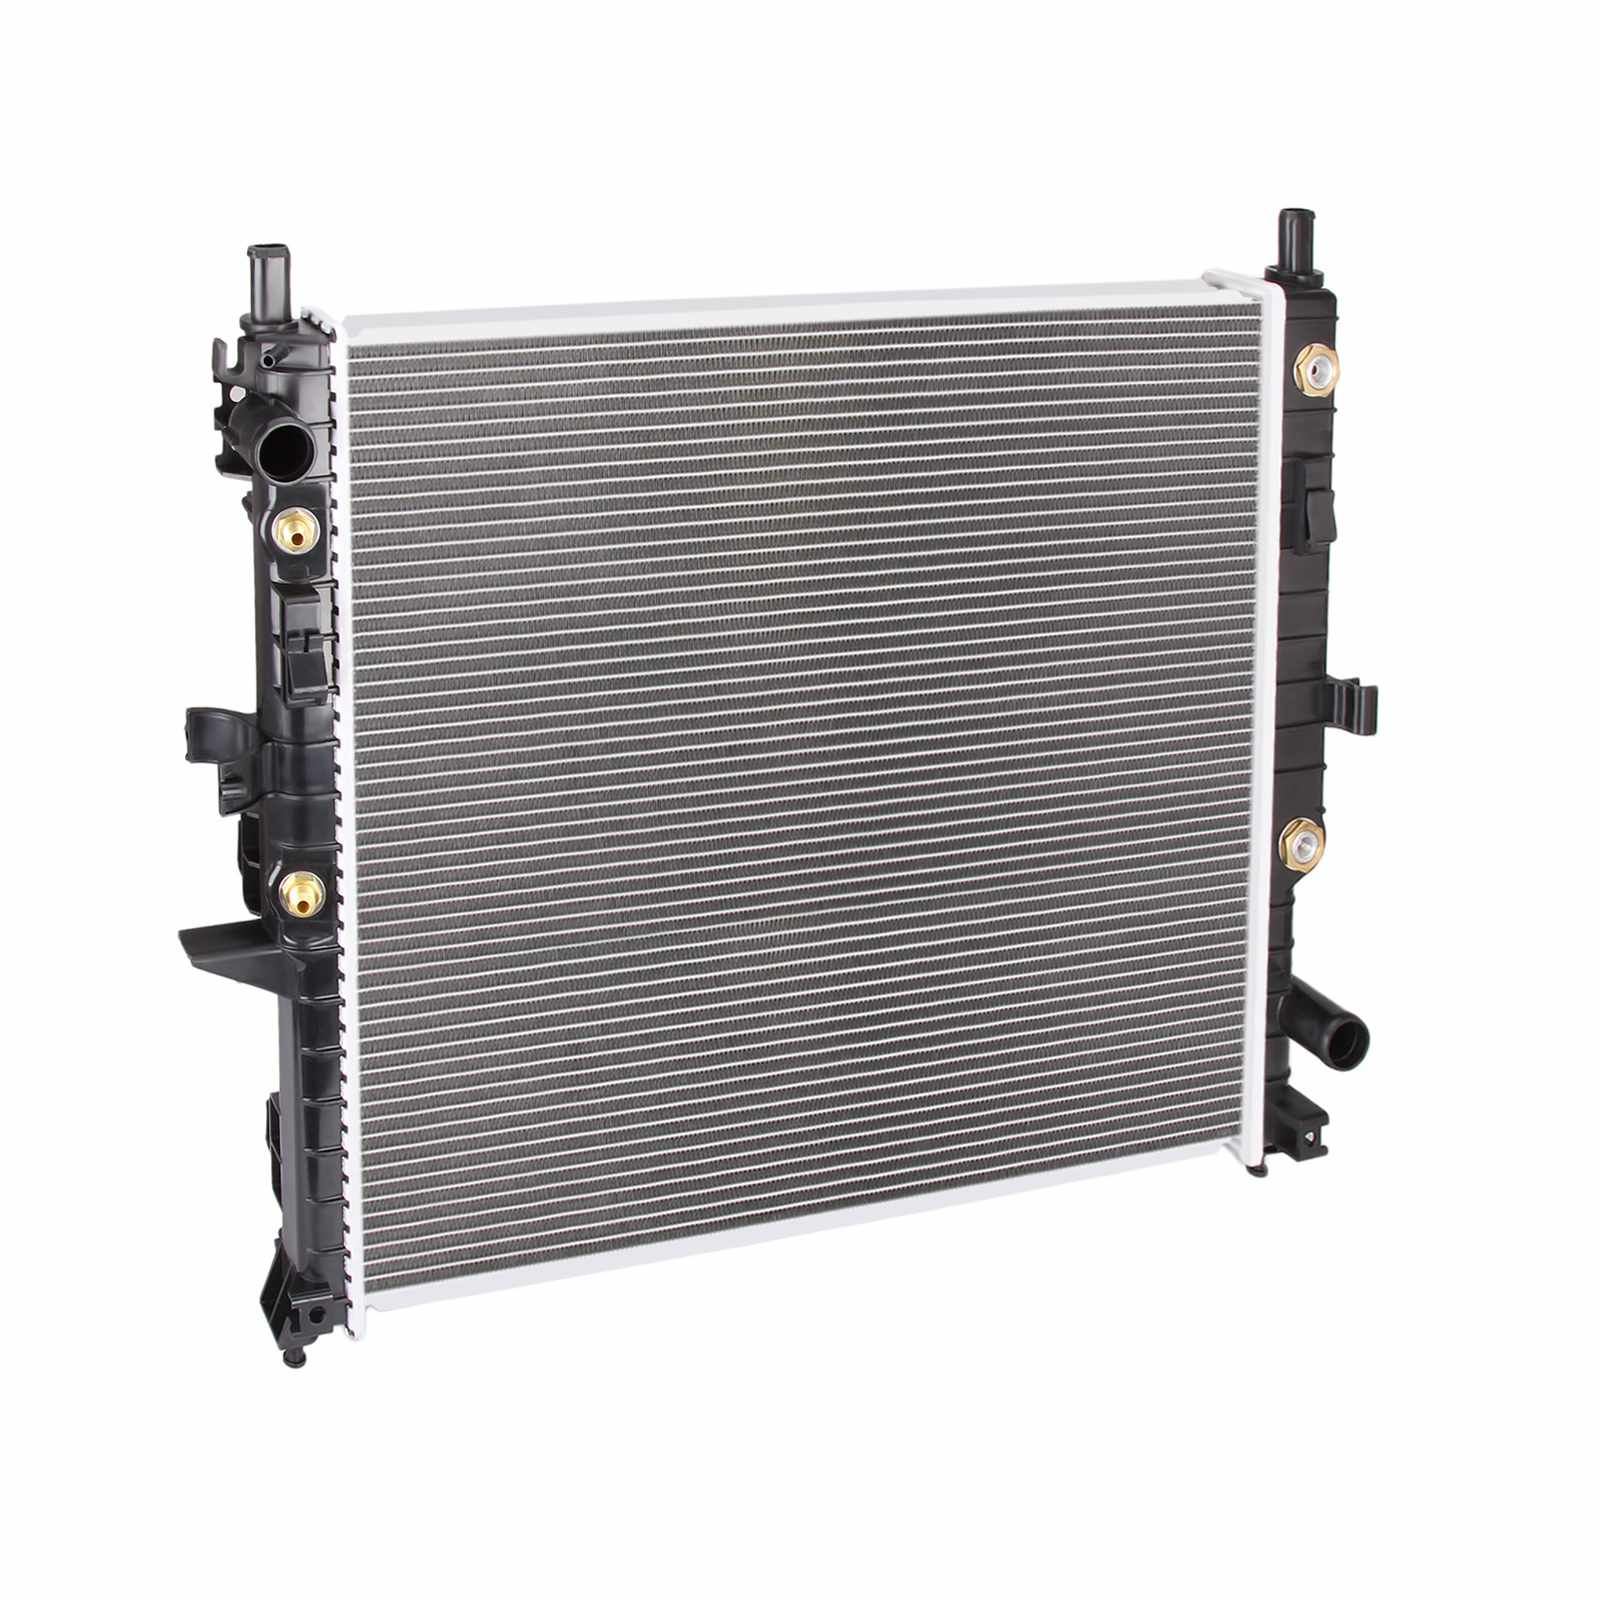 New Radiator for Mercedes-Benz ML350 ML55 AMG V6 3.7 V8 5.5 2000-2005 AT MT 2345